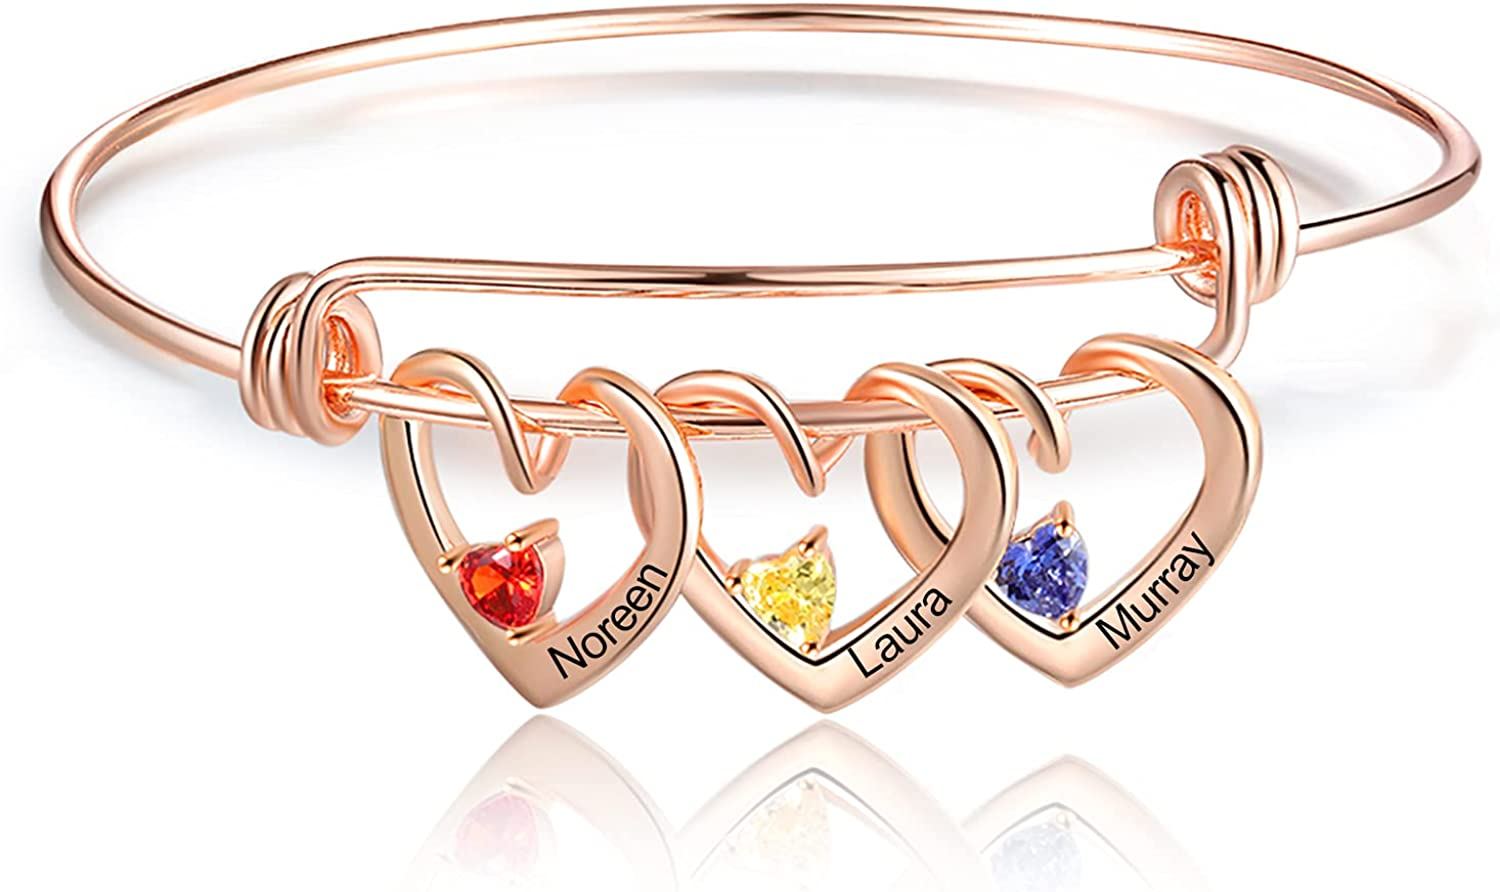 Personalized Love Bracelet Bangle for Women with Simulated Birthstone Heart Charm Name Engraved Adjustable Bangle Bracelets